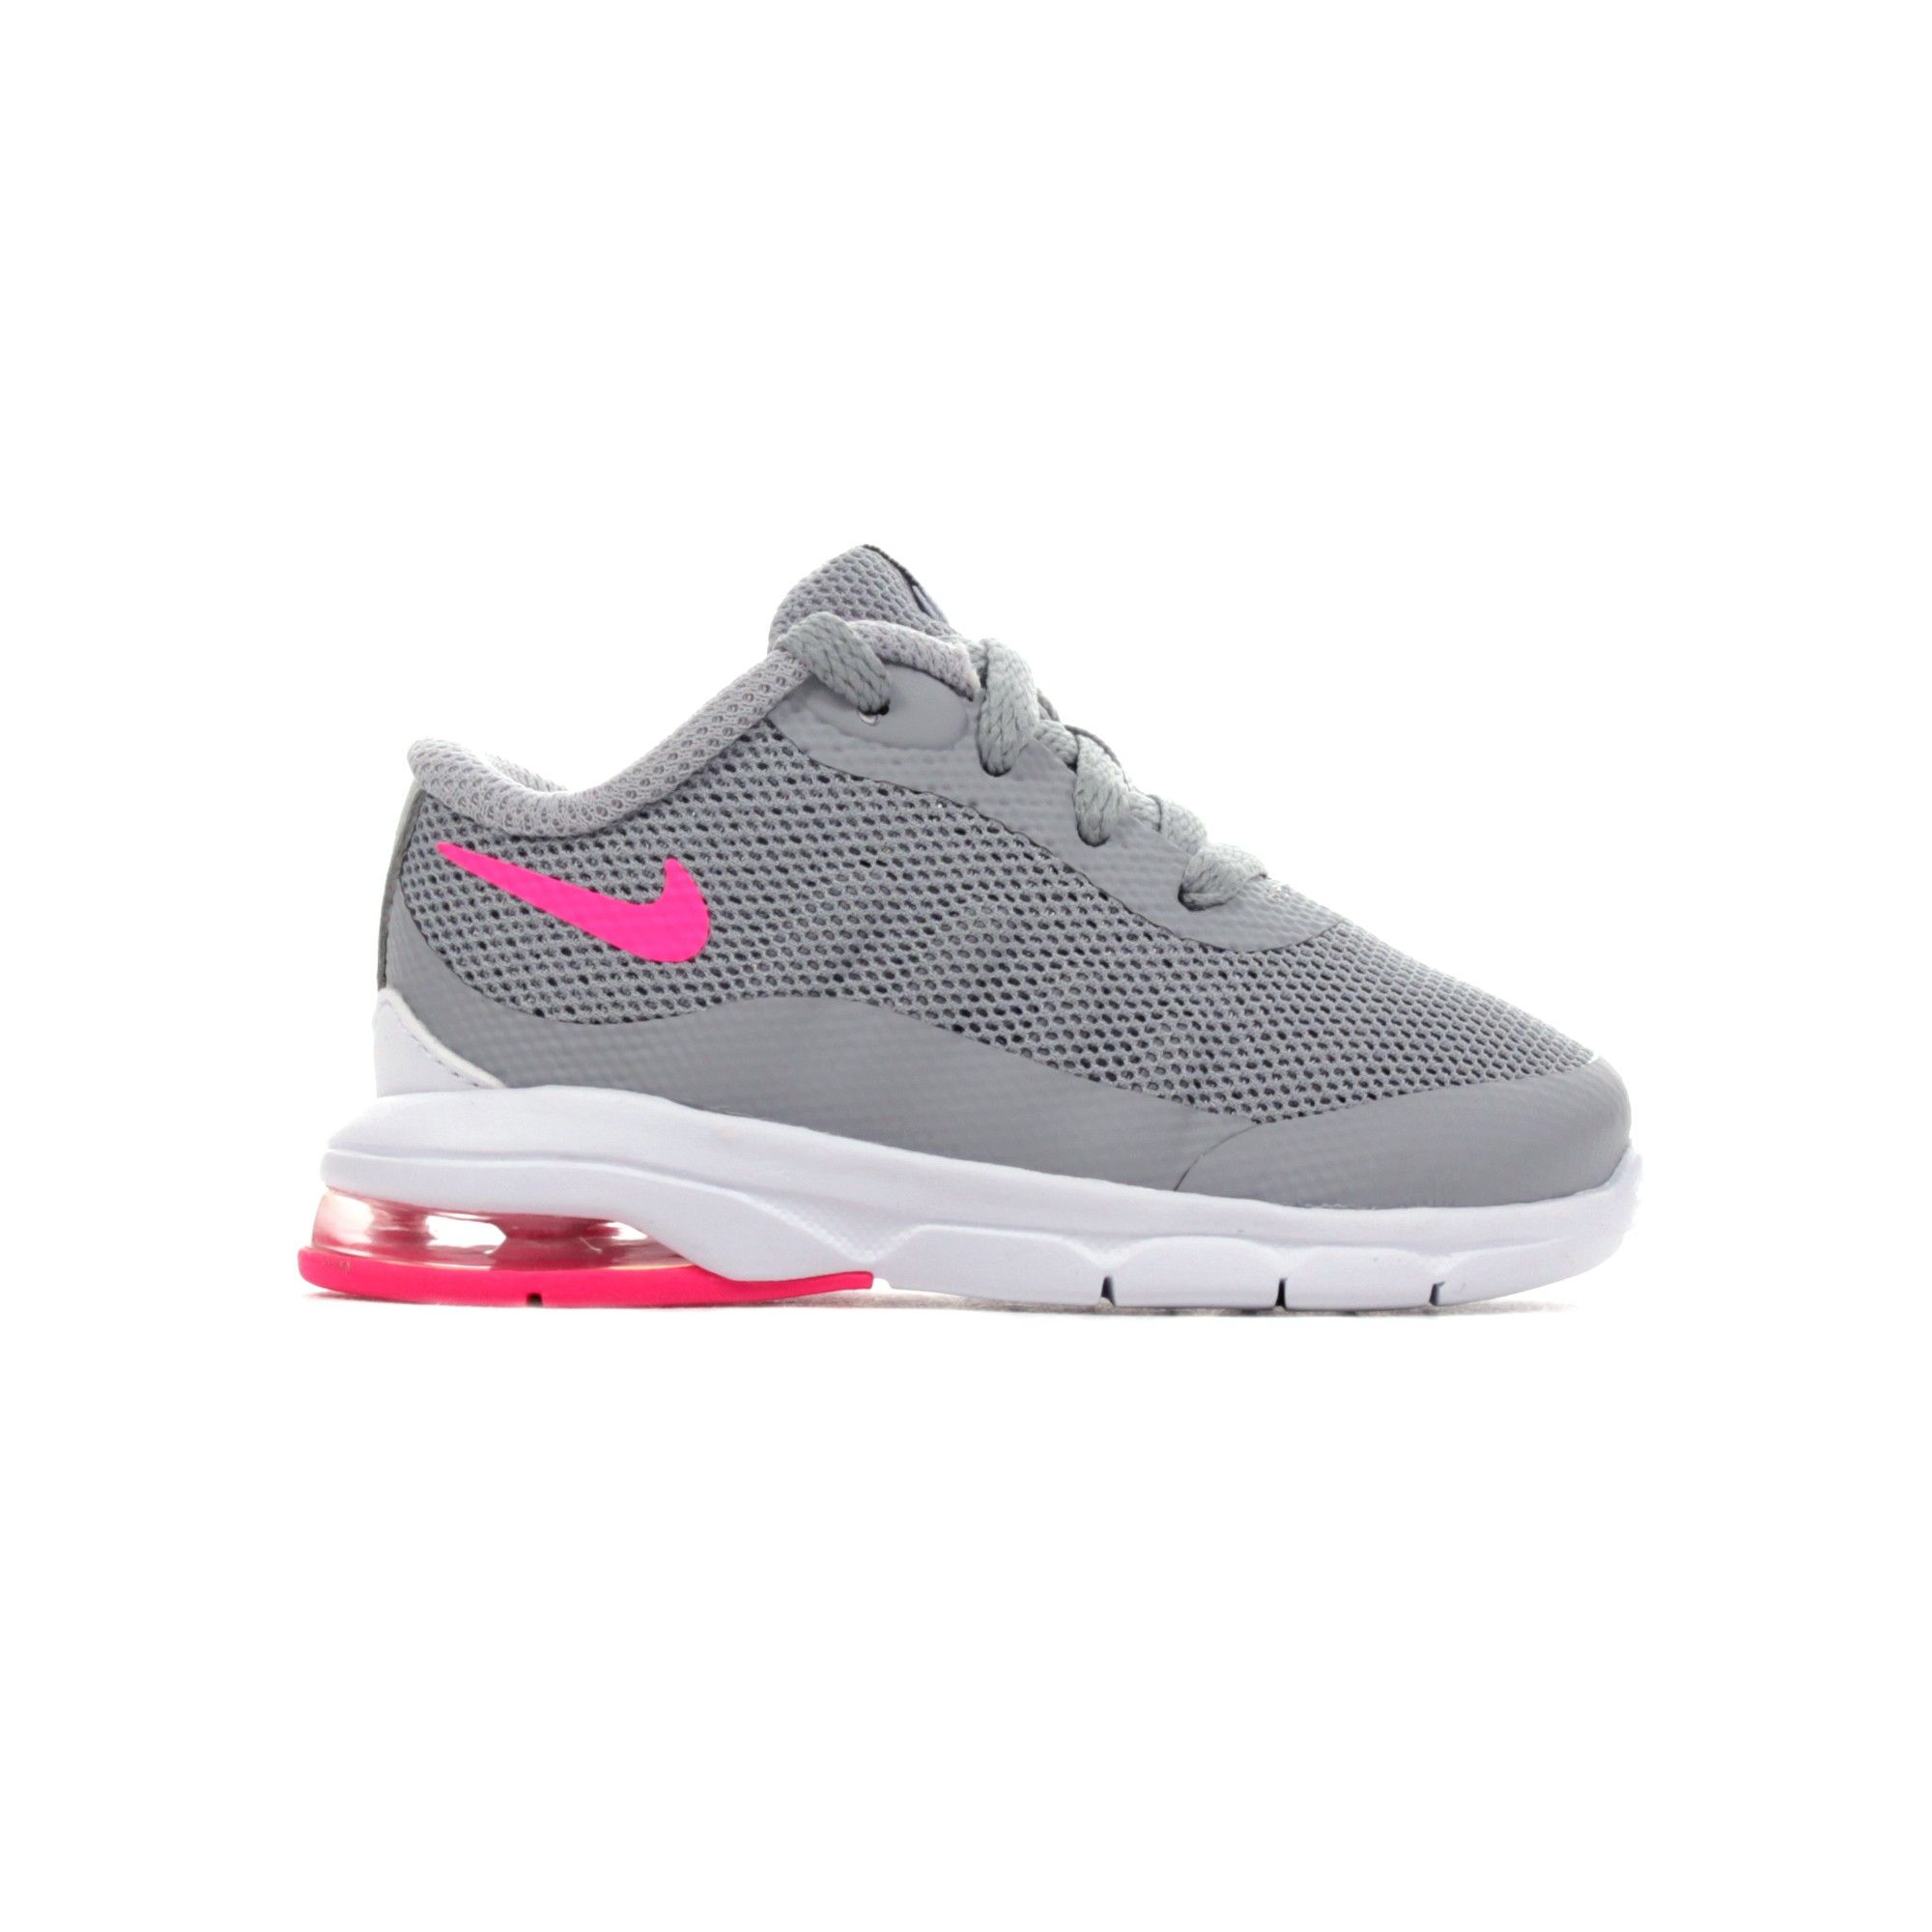 The Nike Air Max Invigor Infant Girls Trainers gets its inspired style from  the iconic Air